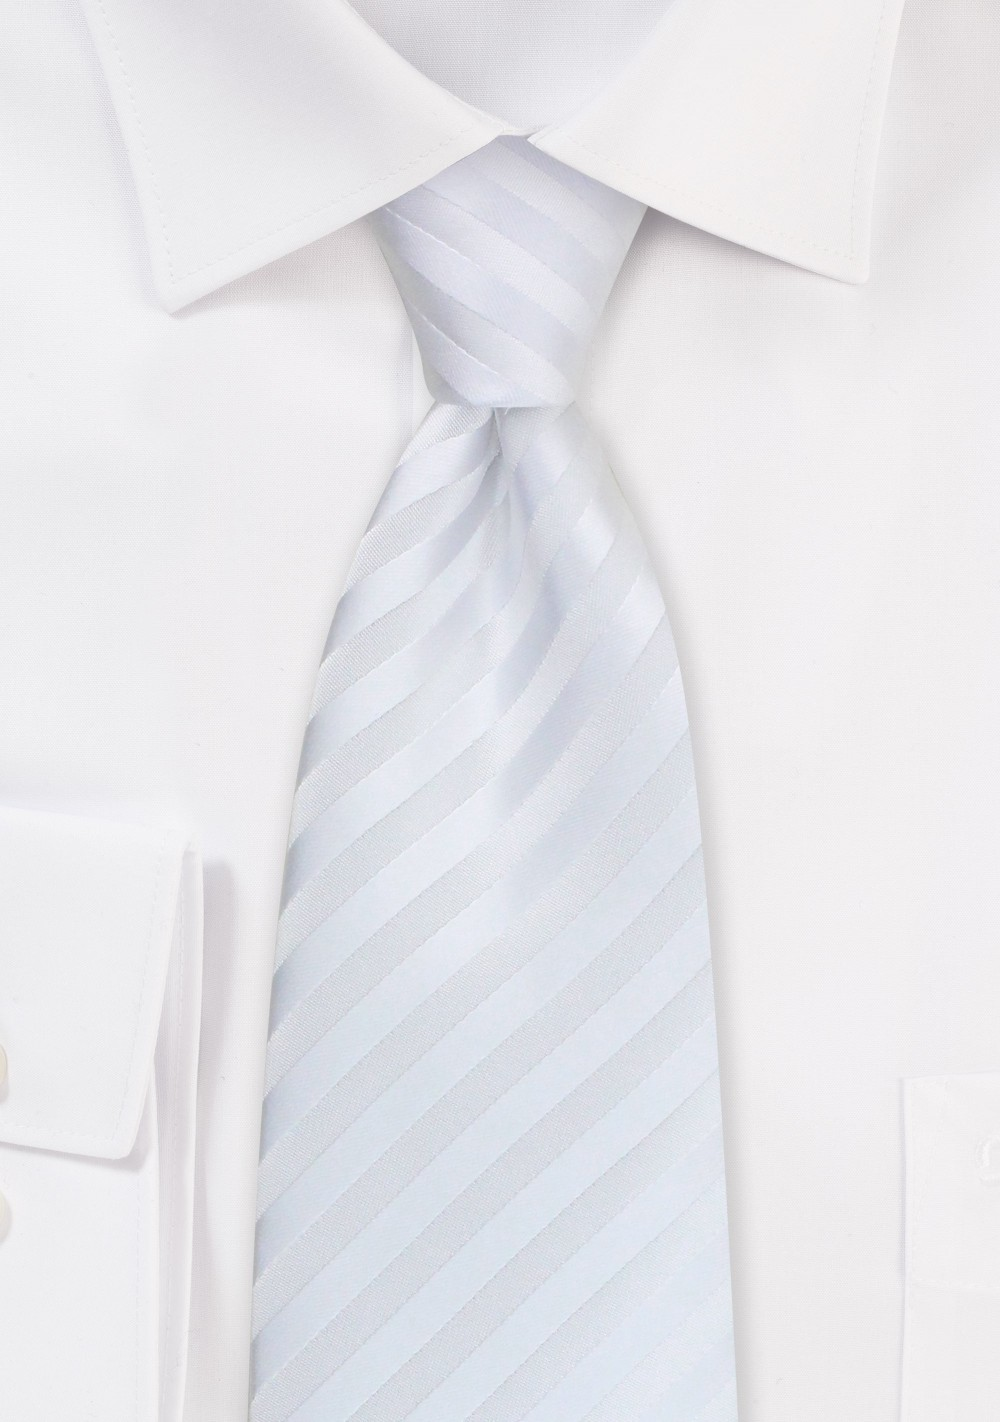 Extra long white tie - White necktie made from stain-resistant microfiber